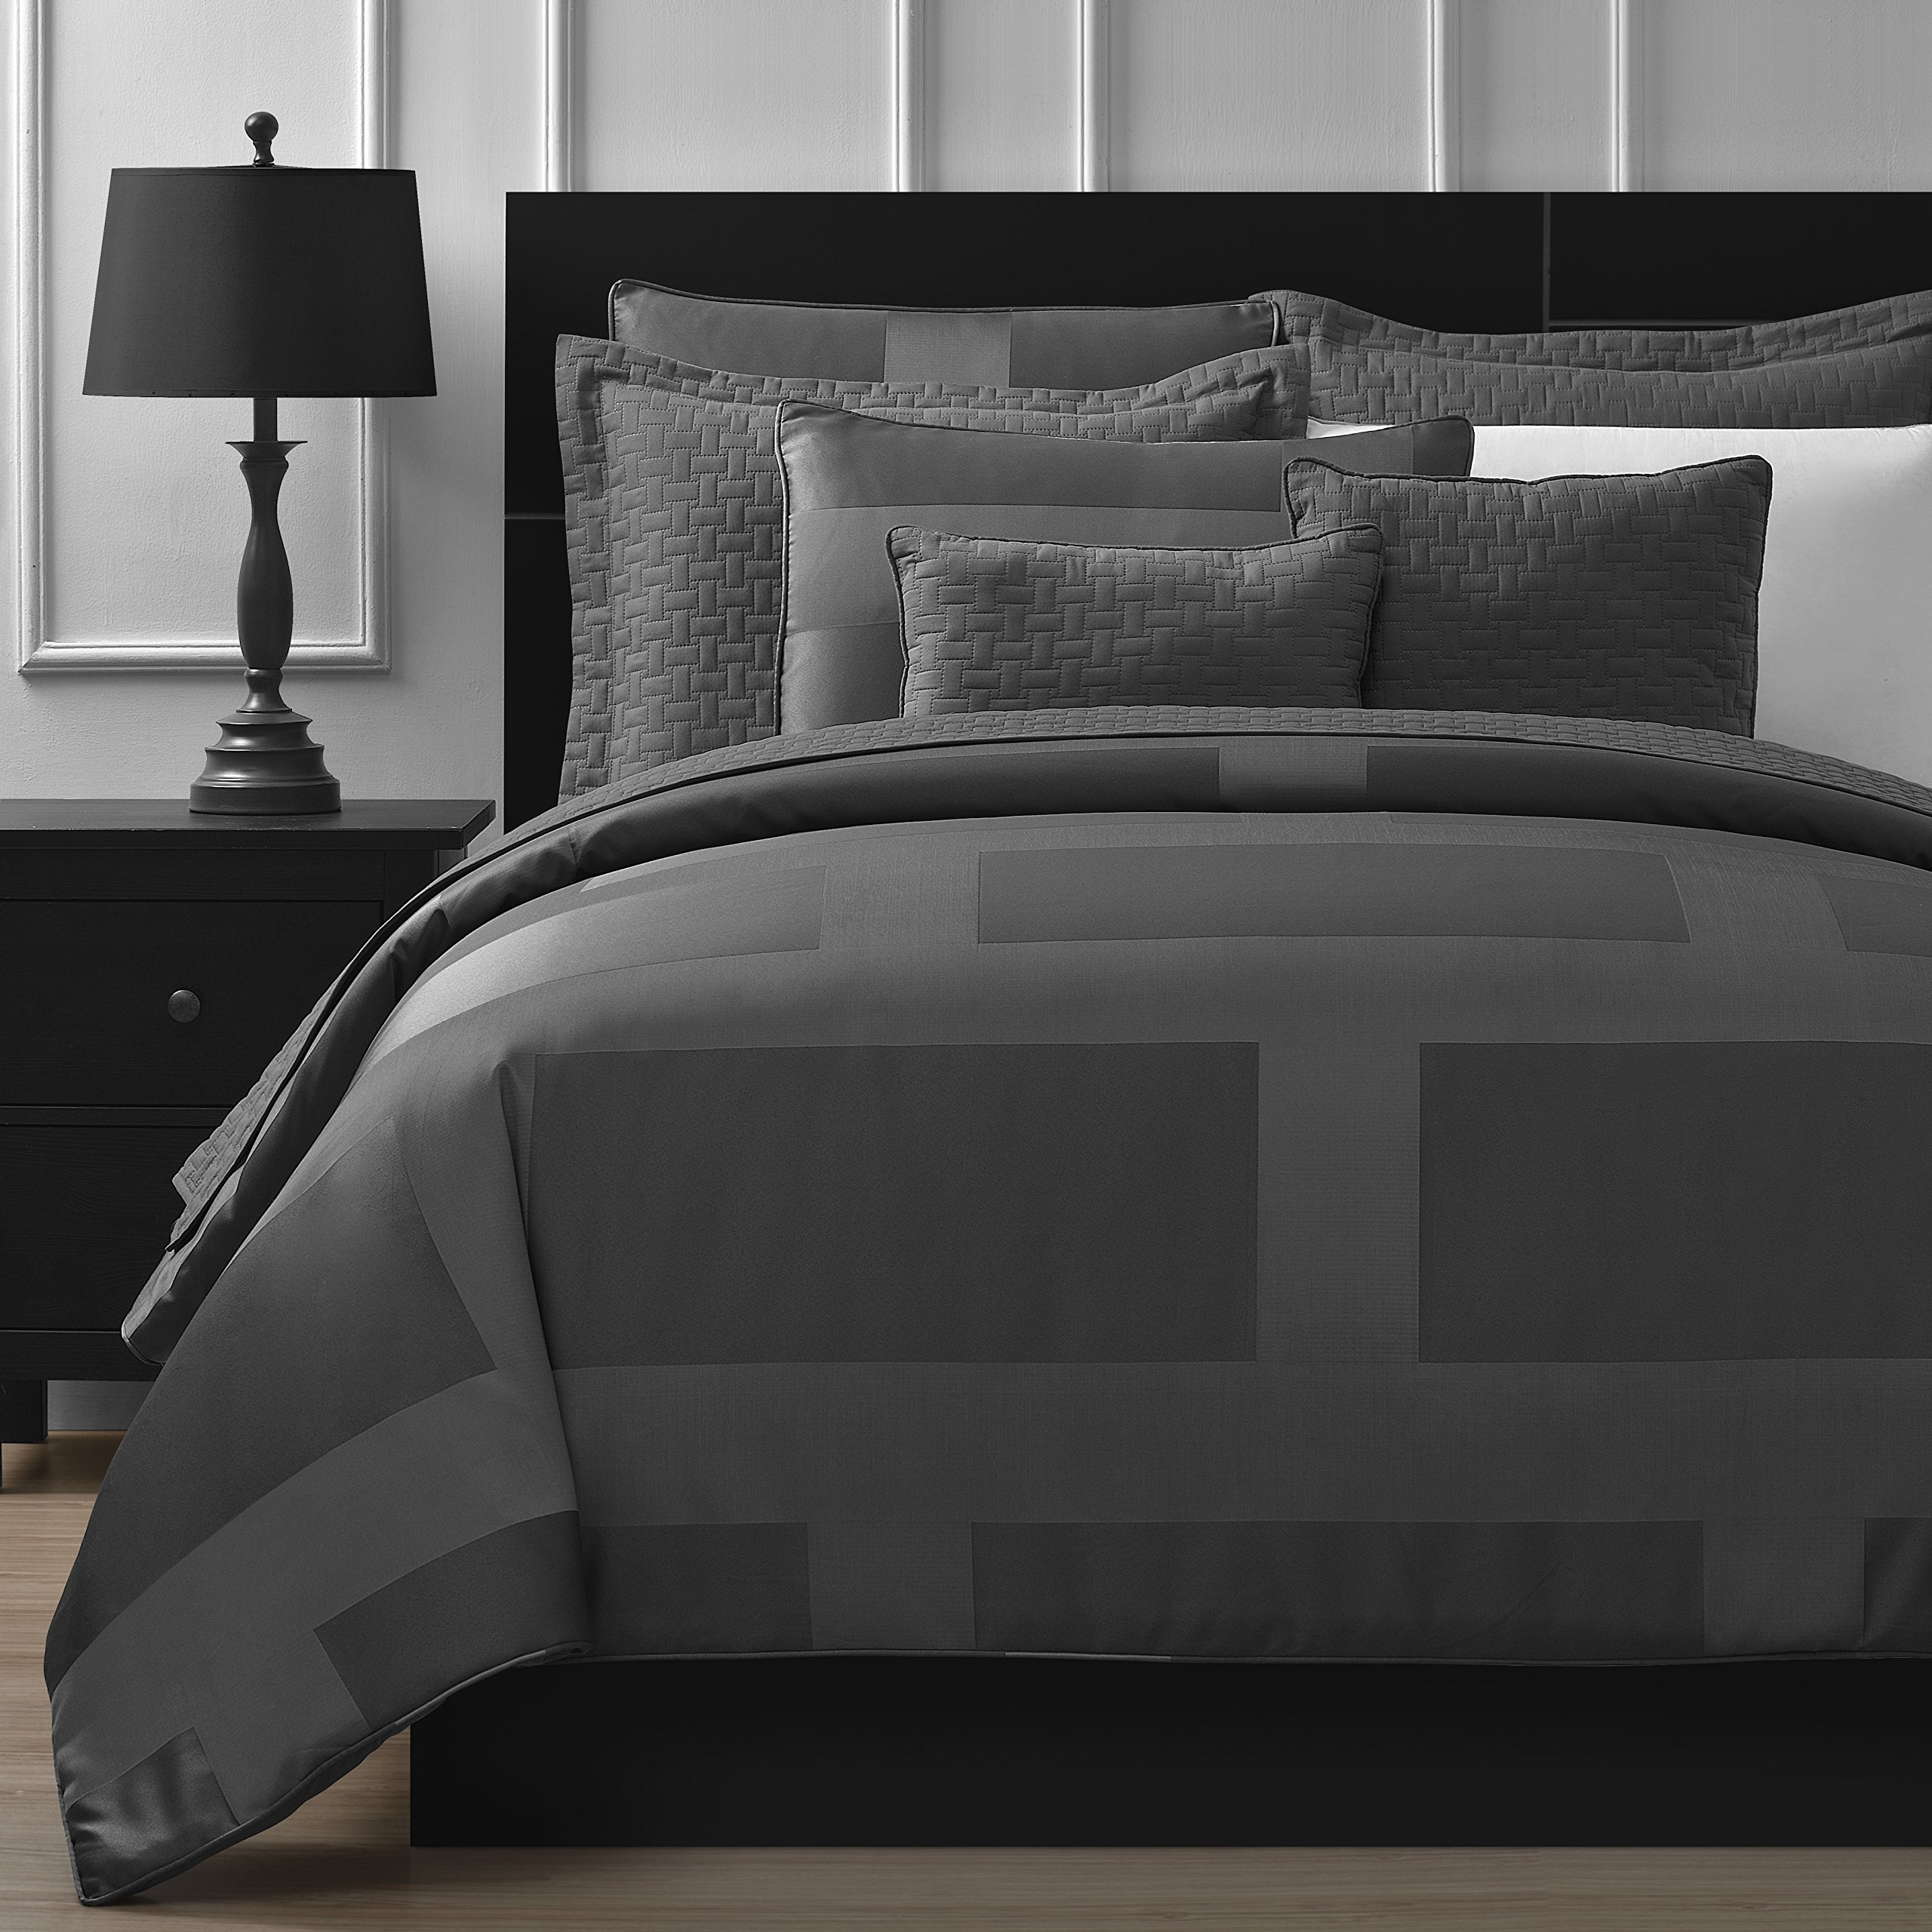 Comfy Bedding Frame Jacquard Microfiber Queen 8-piece Comforter Set, Gray by Comfy Bedding